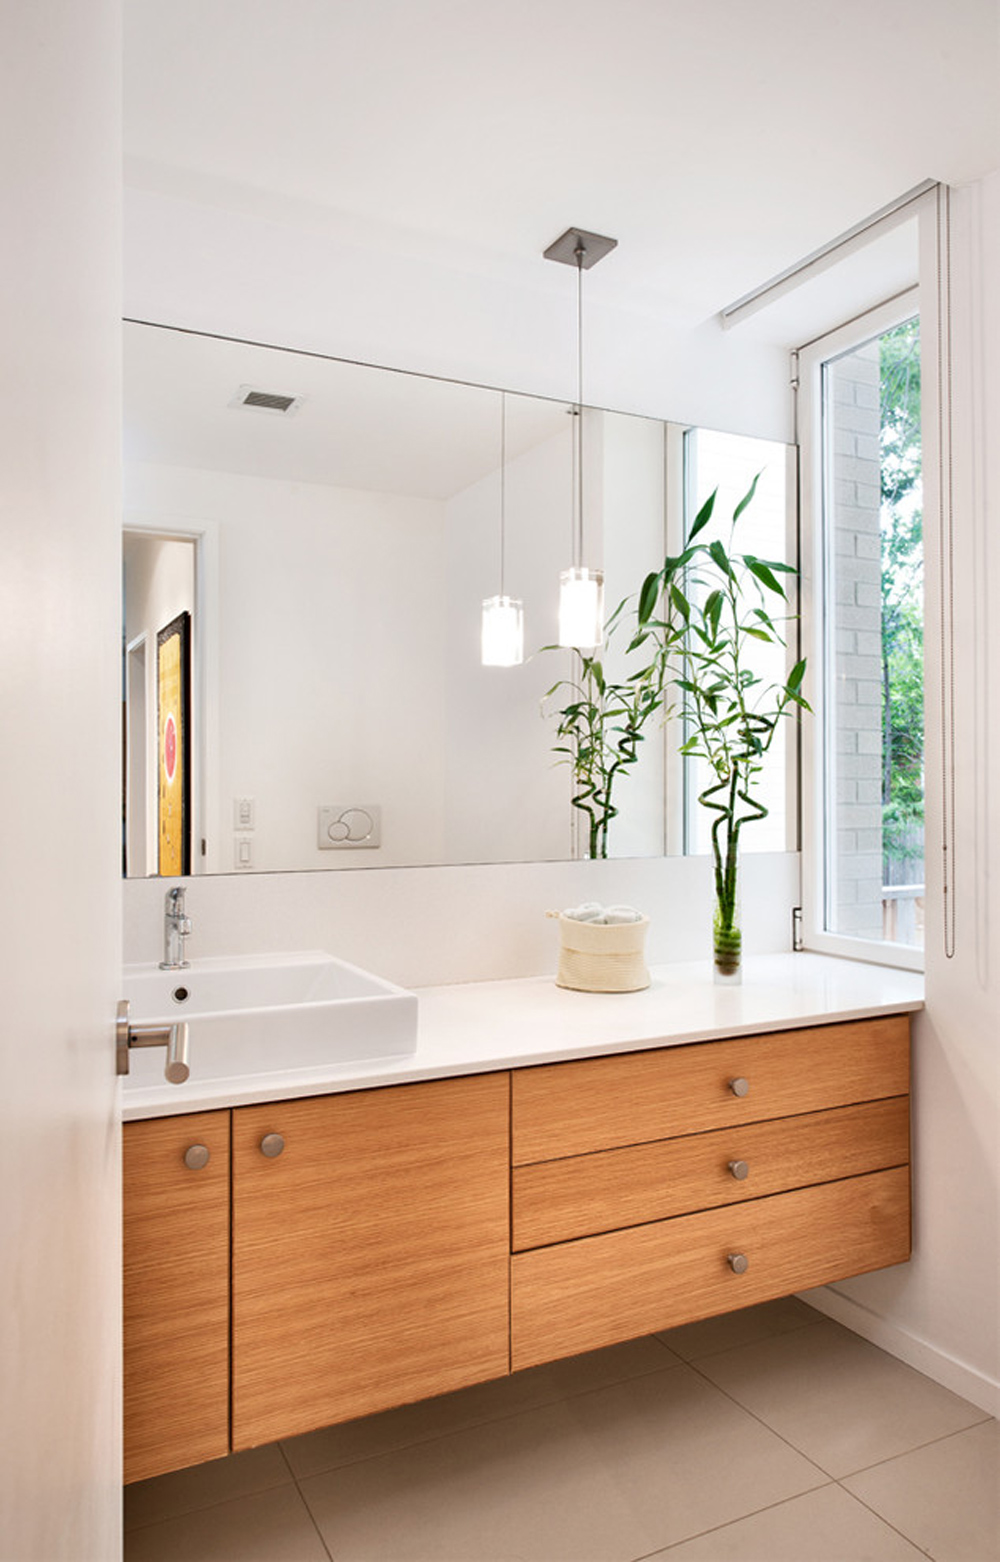 Best Plants for Bathroom: Which is the right one for you? on for a restaurant, for a closet, for a desk, for a beach, for a safe, for a bar, for a family,